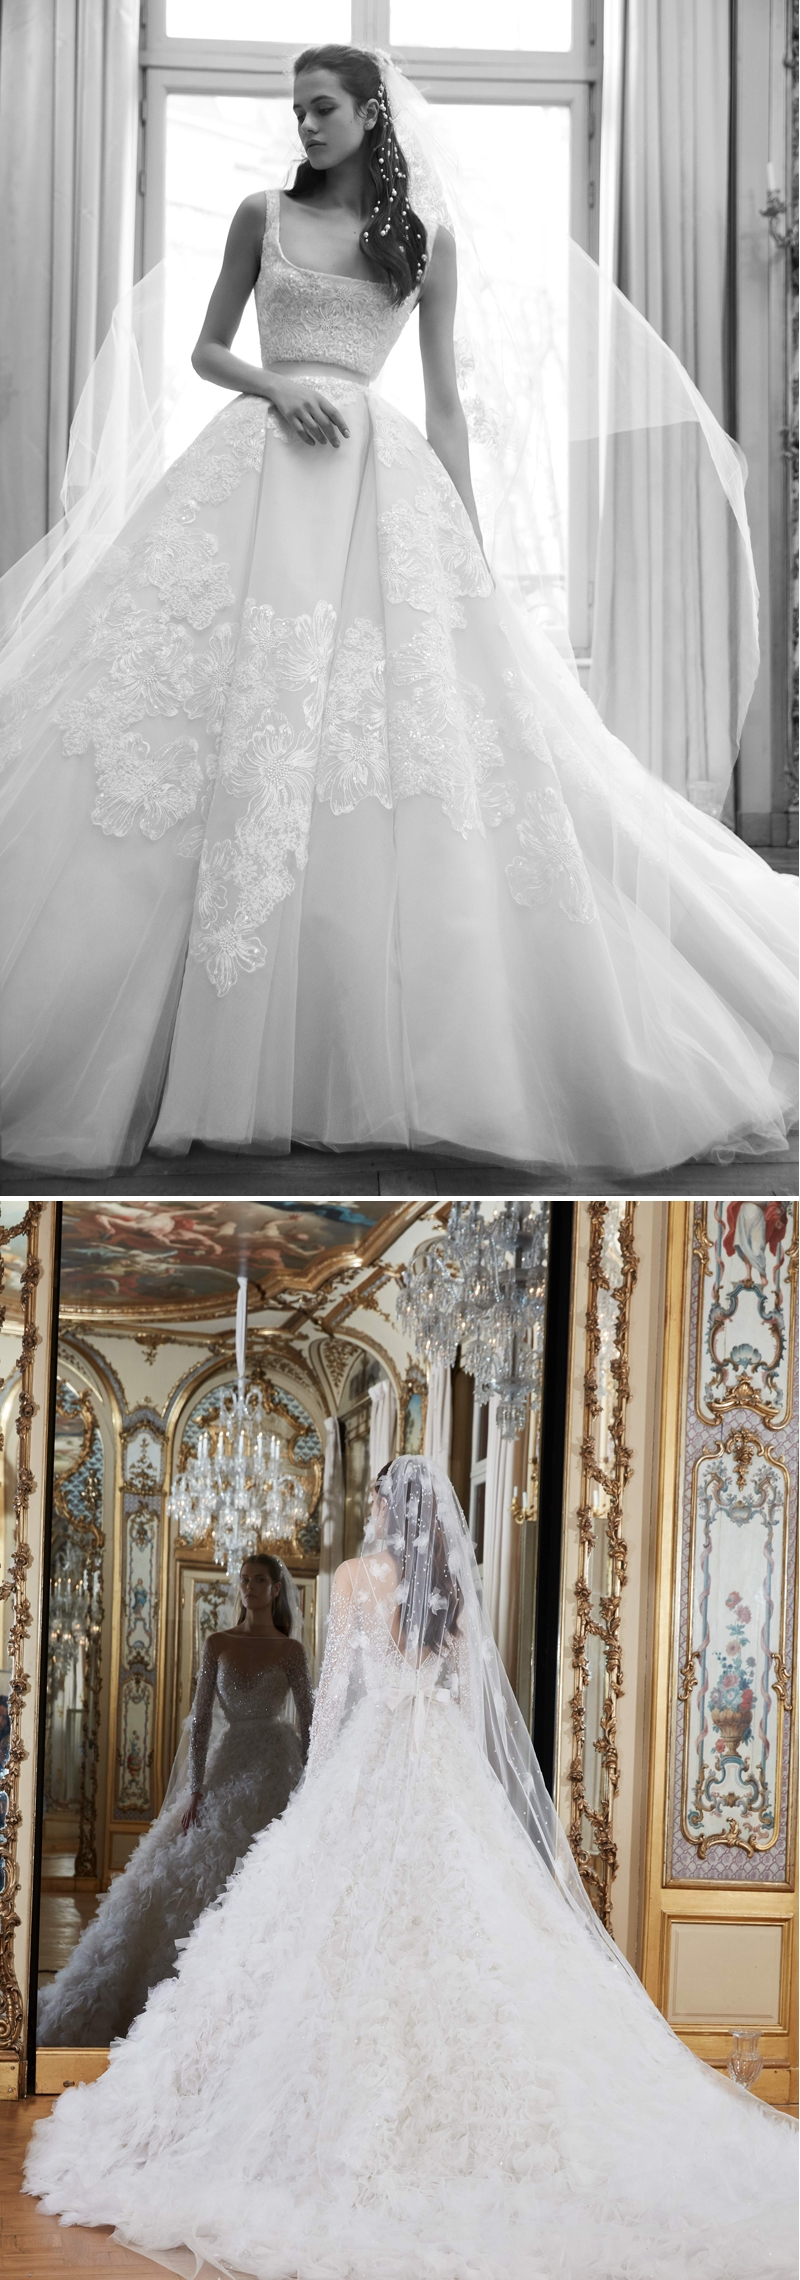 2e9c6adfe1 ELIE SAAB SPRING 2019 BRIDAL COLLECTION